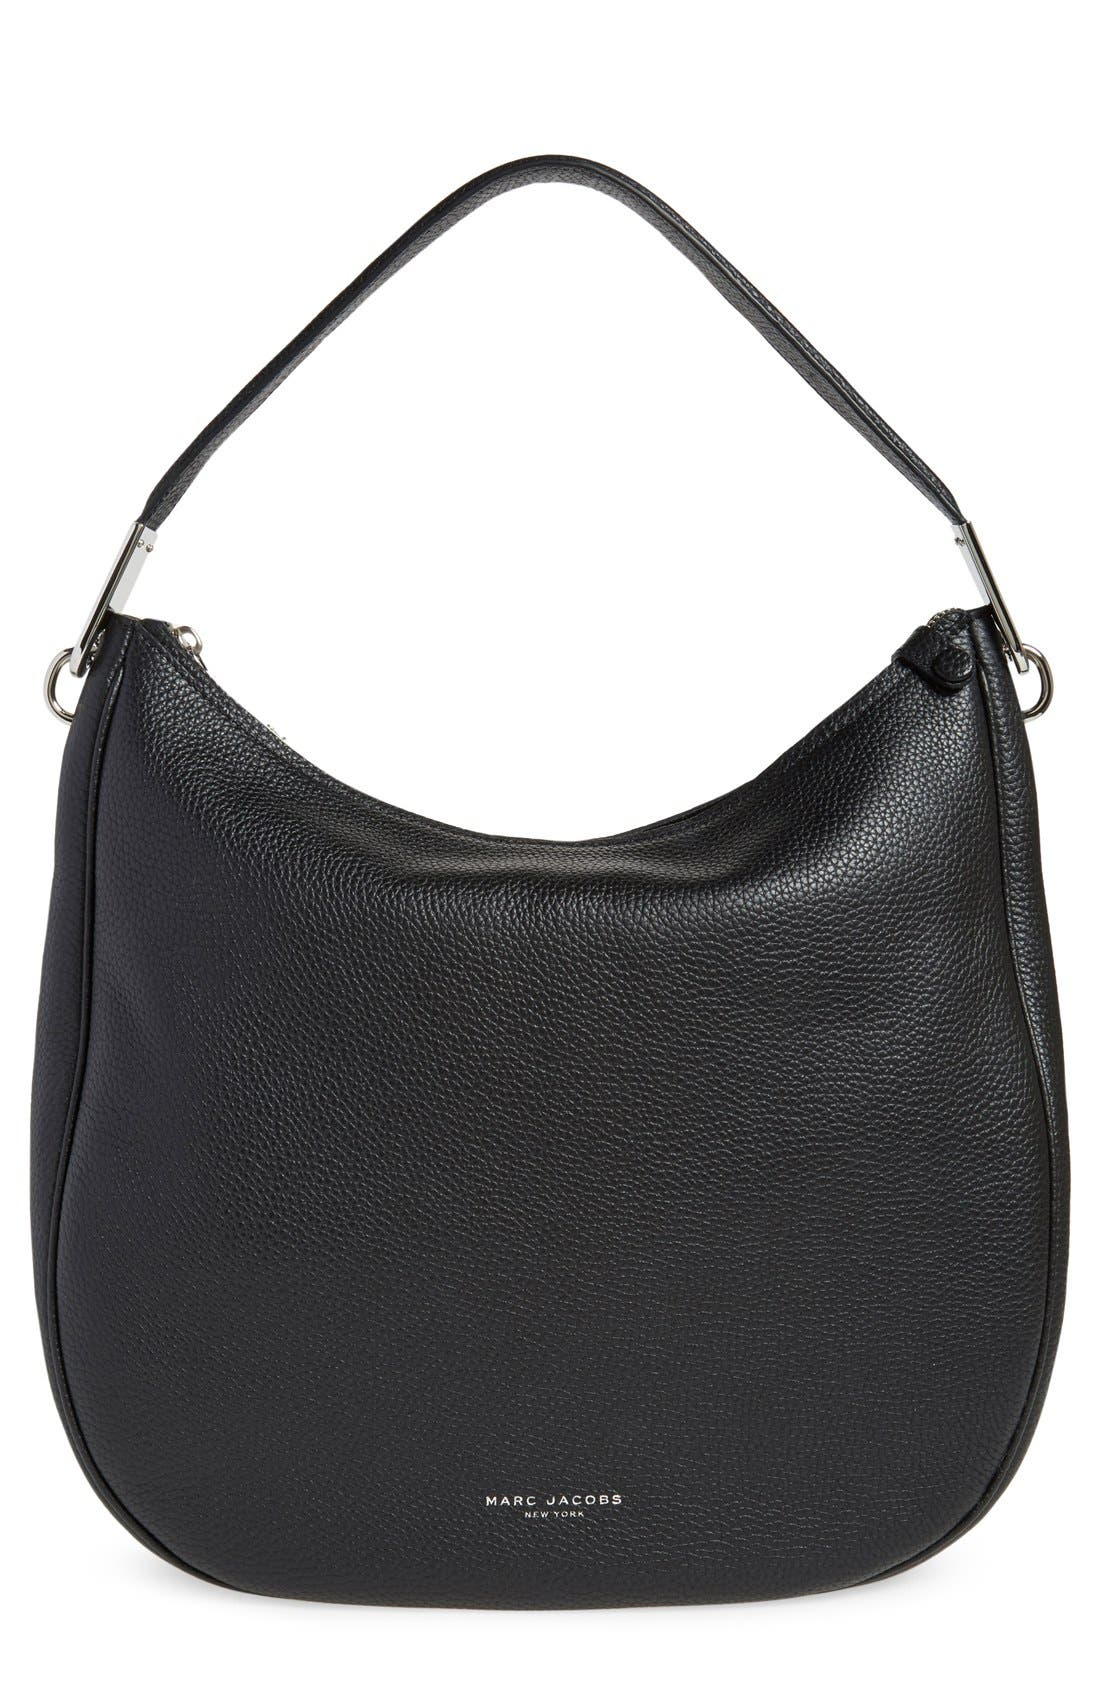 MARC JACOBS, 'Pike Place' Leather Hobo, Main thumbnail 1, color, 001